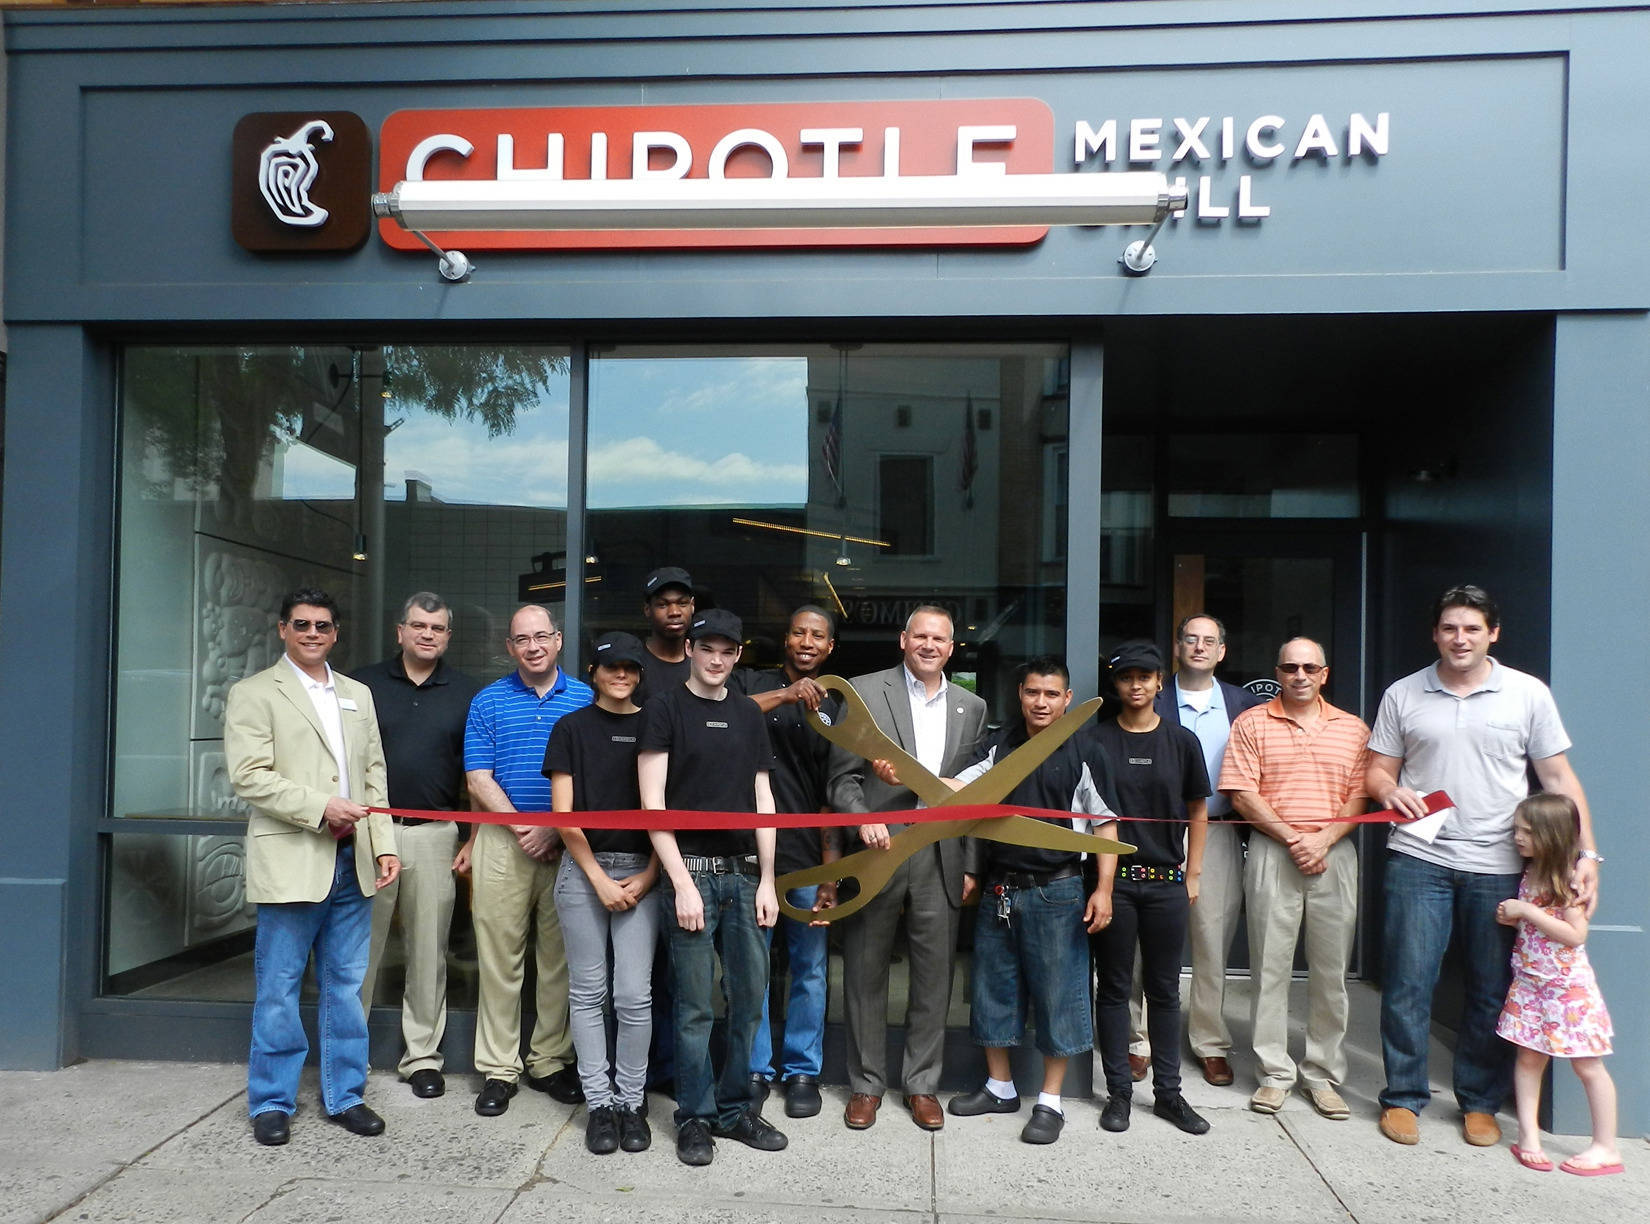 10e724facd7fe04322c3_9390537ef8353b800b4f_Chipotle_Westfield_2013_opening.jpg